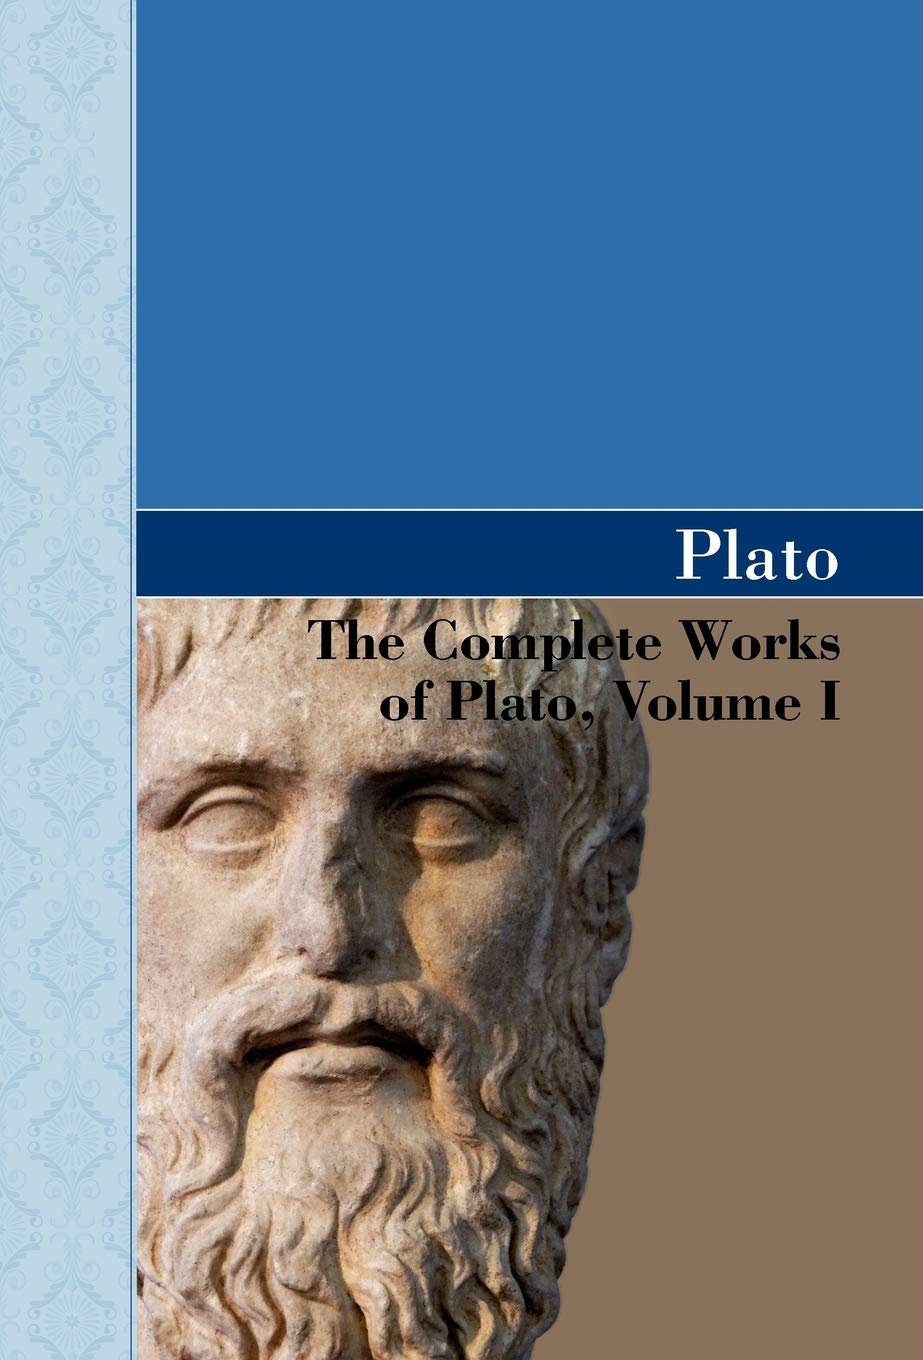 The Complete Works Of Plato Volume I